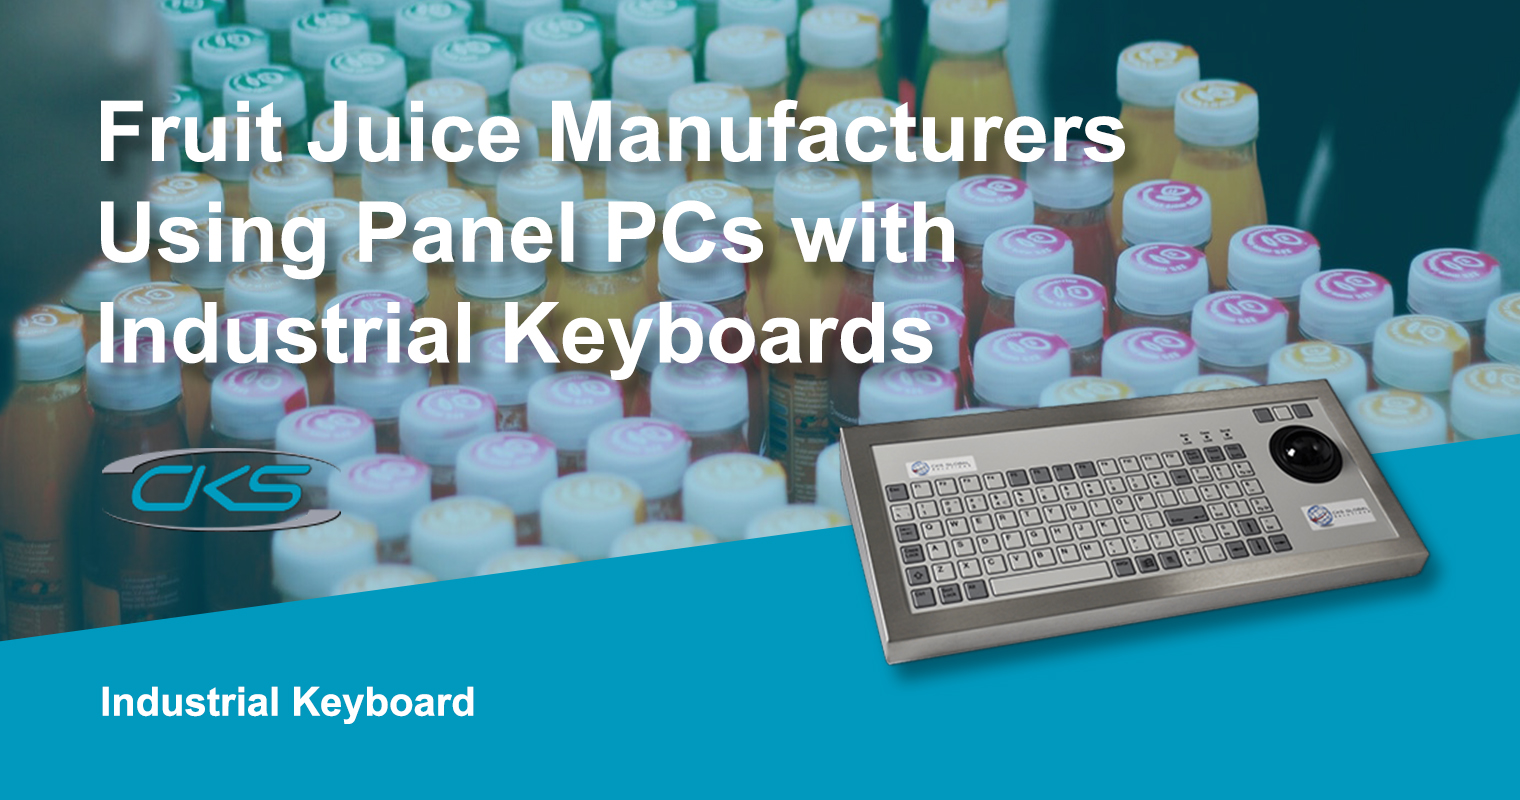 Industrial Keyboards Installed to Panel PCs for Improved Operations